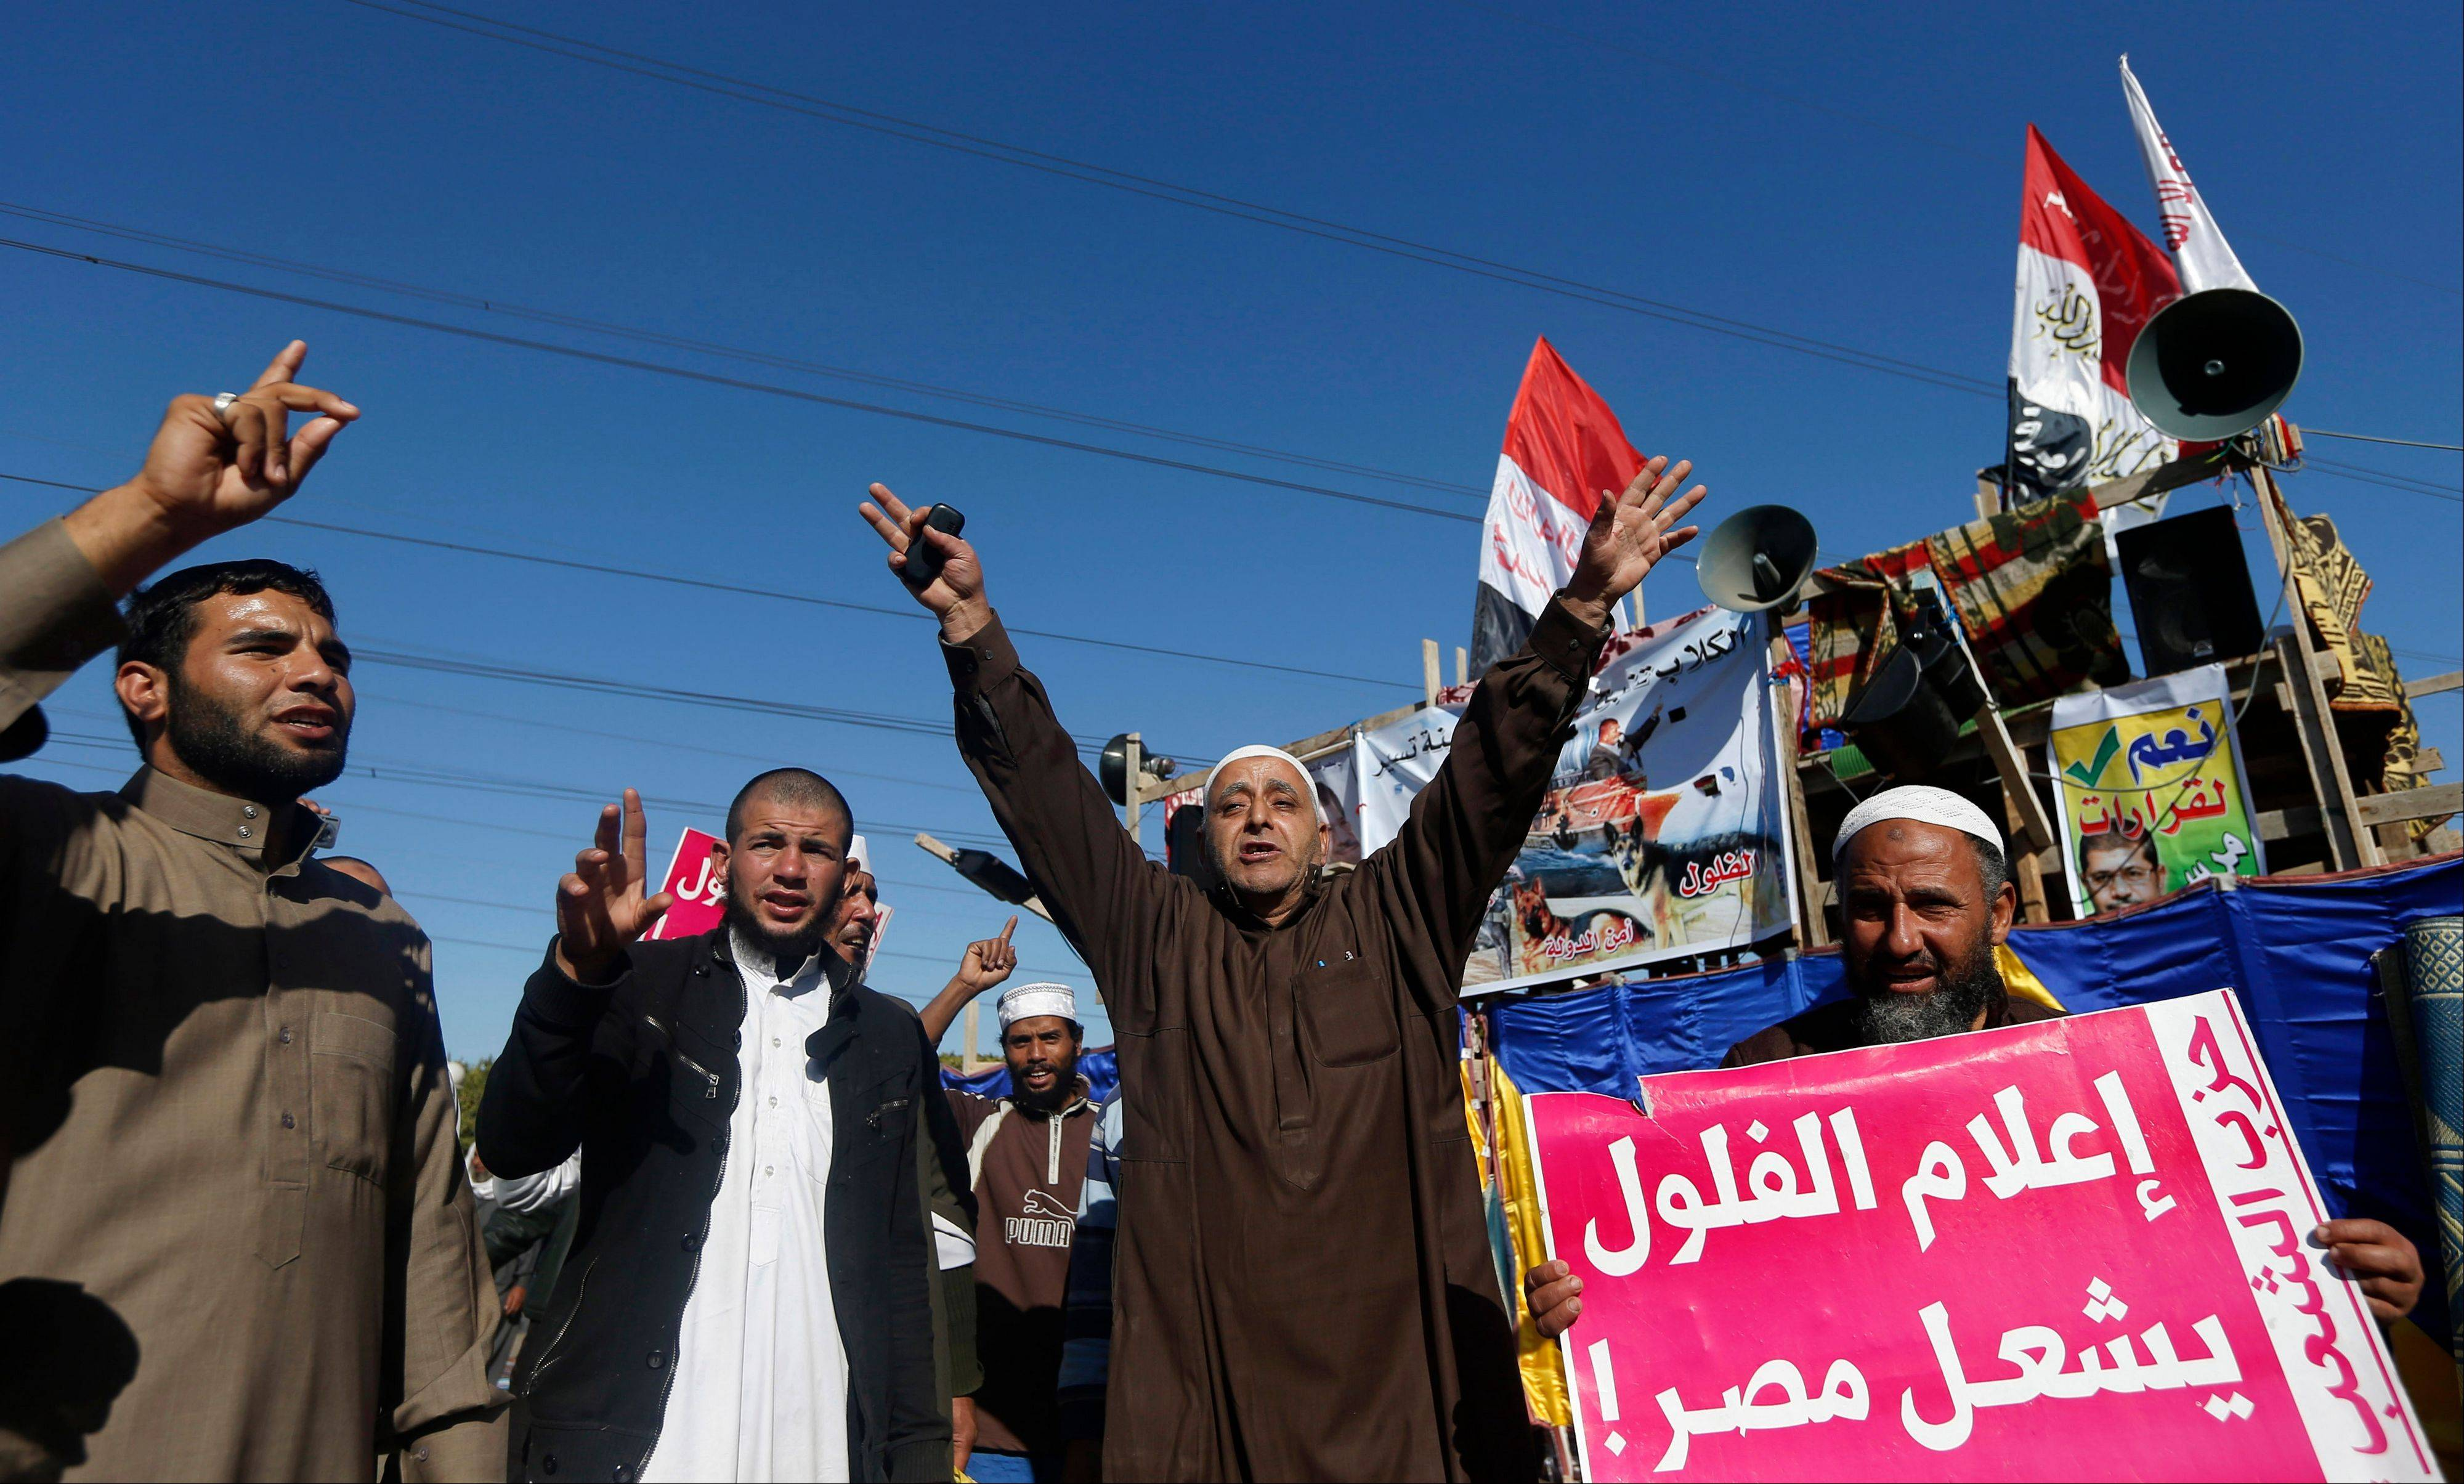 "Islamist protesters supporting Egyptian President Mohammed Morsi chant slogans in front of the Media City complex in Giza, Egypt, Wednesday, Dec. 12, 2012. The Arabic sign at right reads, ""journalist remnants will destroy Egypt."" An Egyptian opposition alliance urged supporters on Wednesday to vote ""No"" in the referendum on a disputed constitution but said it may still boycott if its conditions are not met."